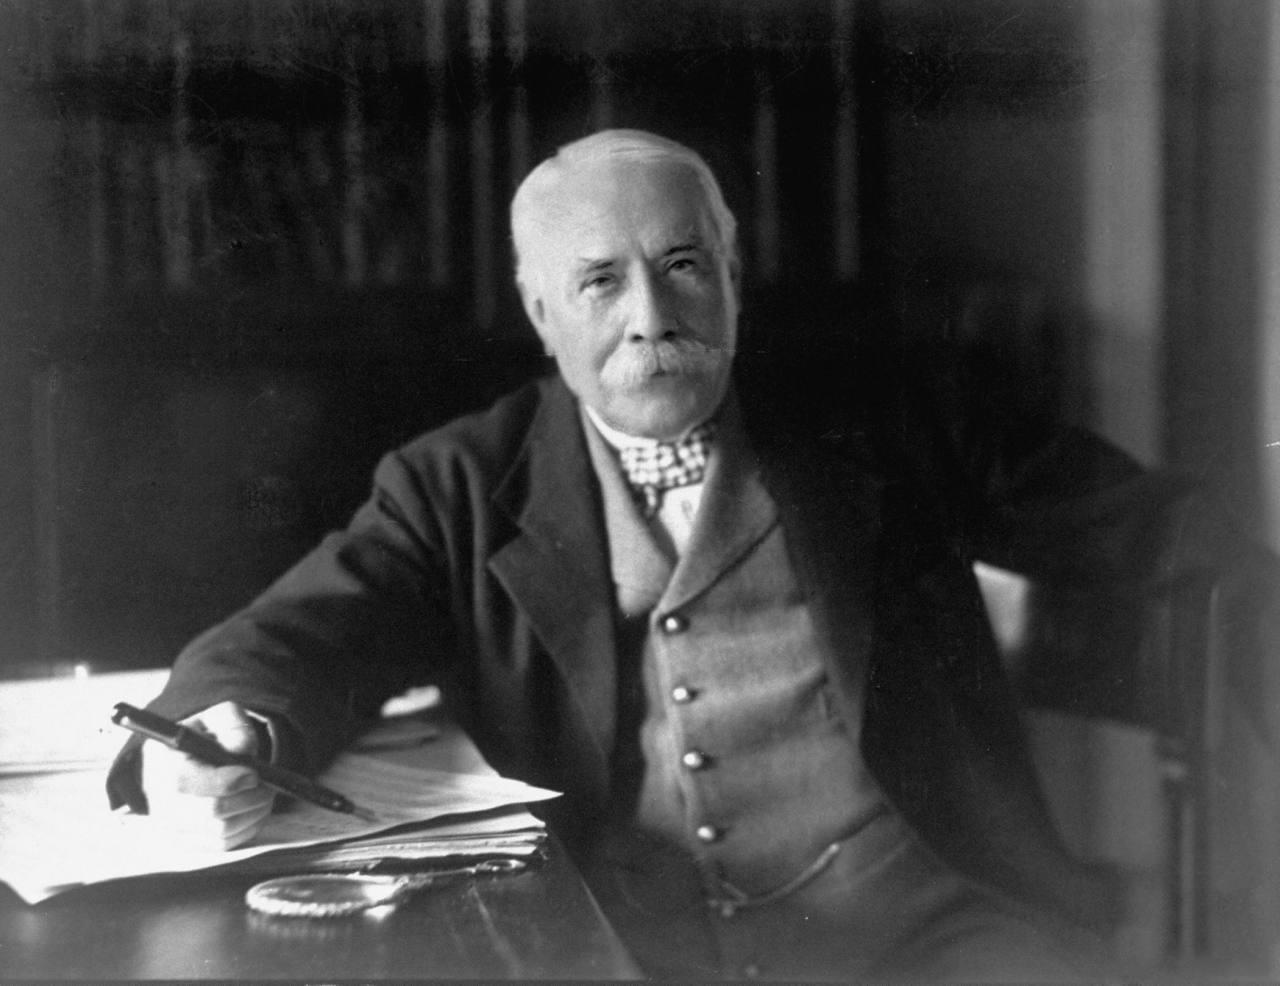 a photo of Edward Elgar